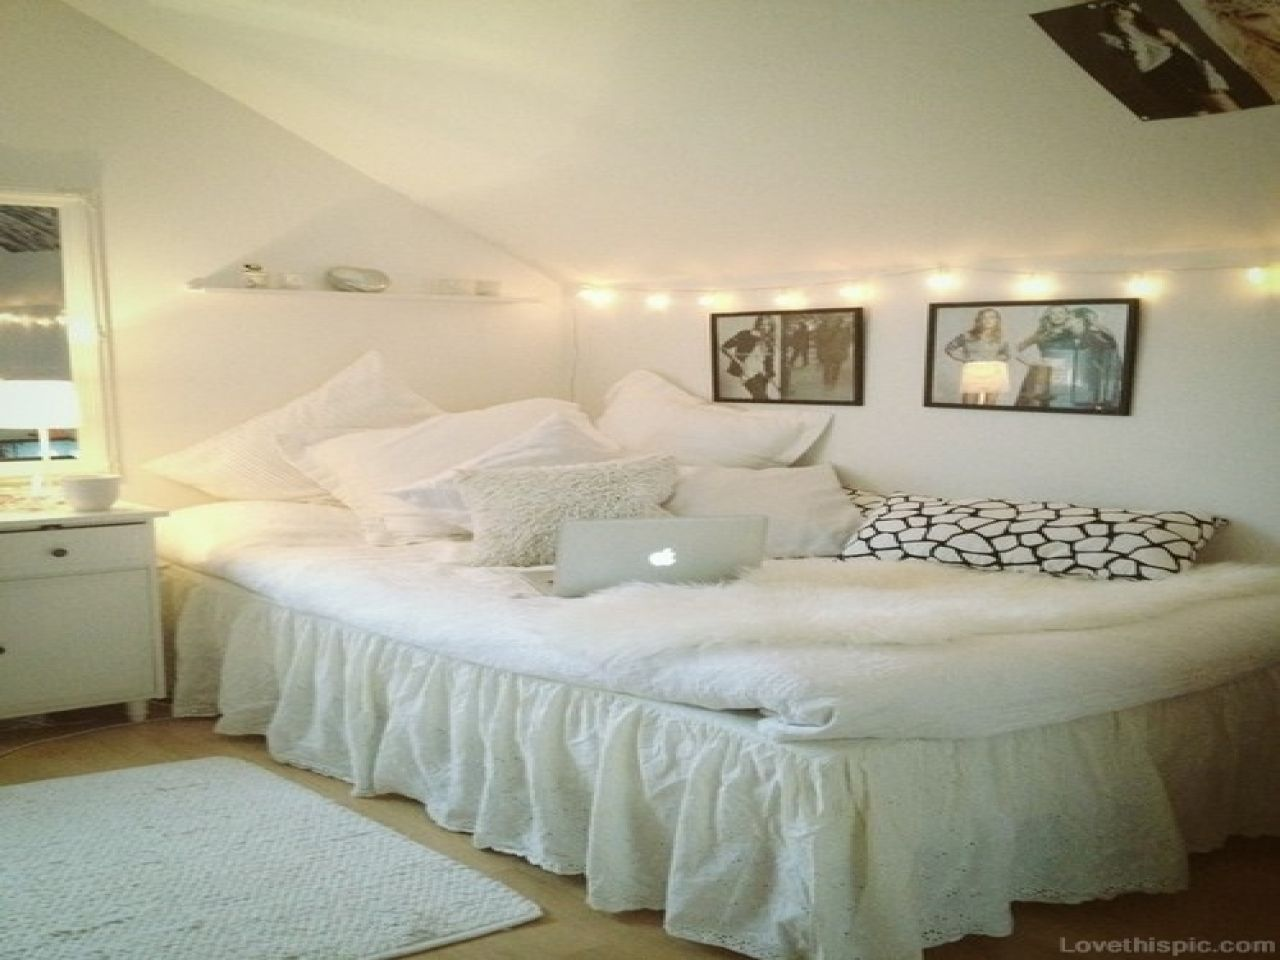 White bedroom designs tumblr - Cute Girl Bedroom Ideas White Teen Room Chair White Tumblr Room